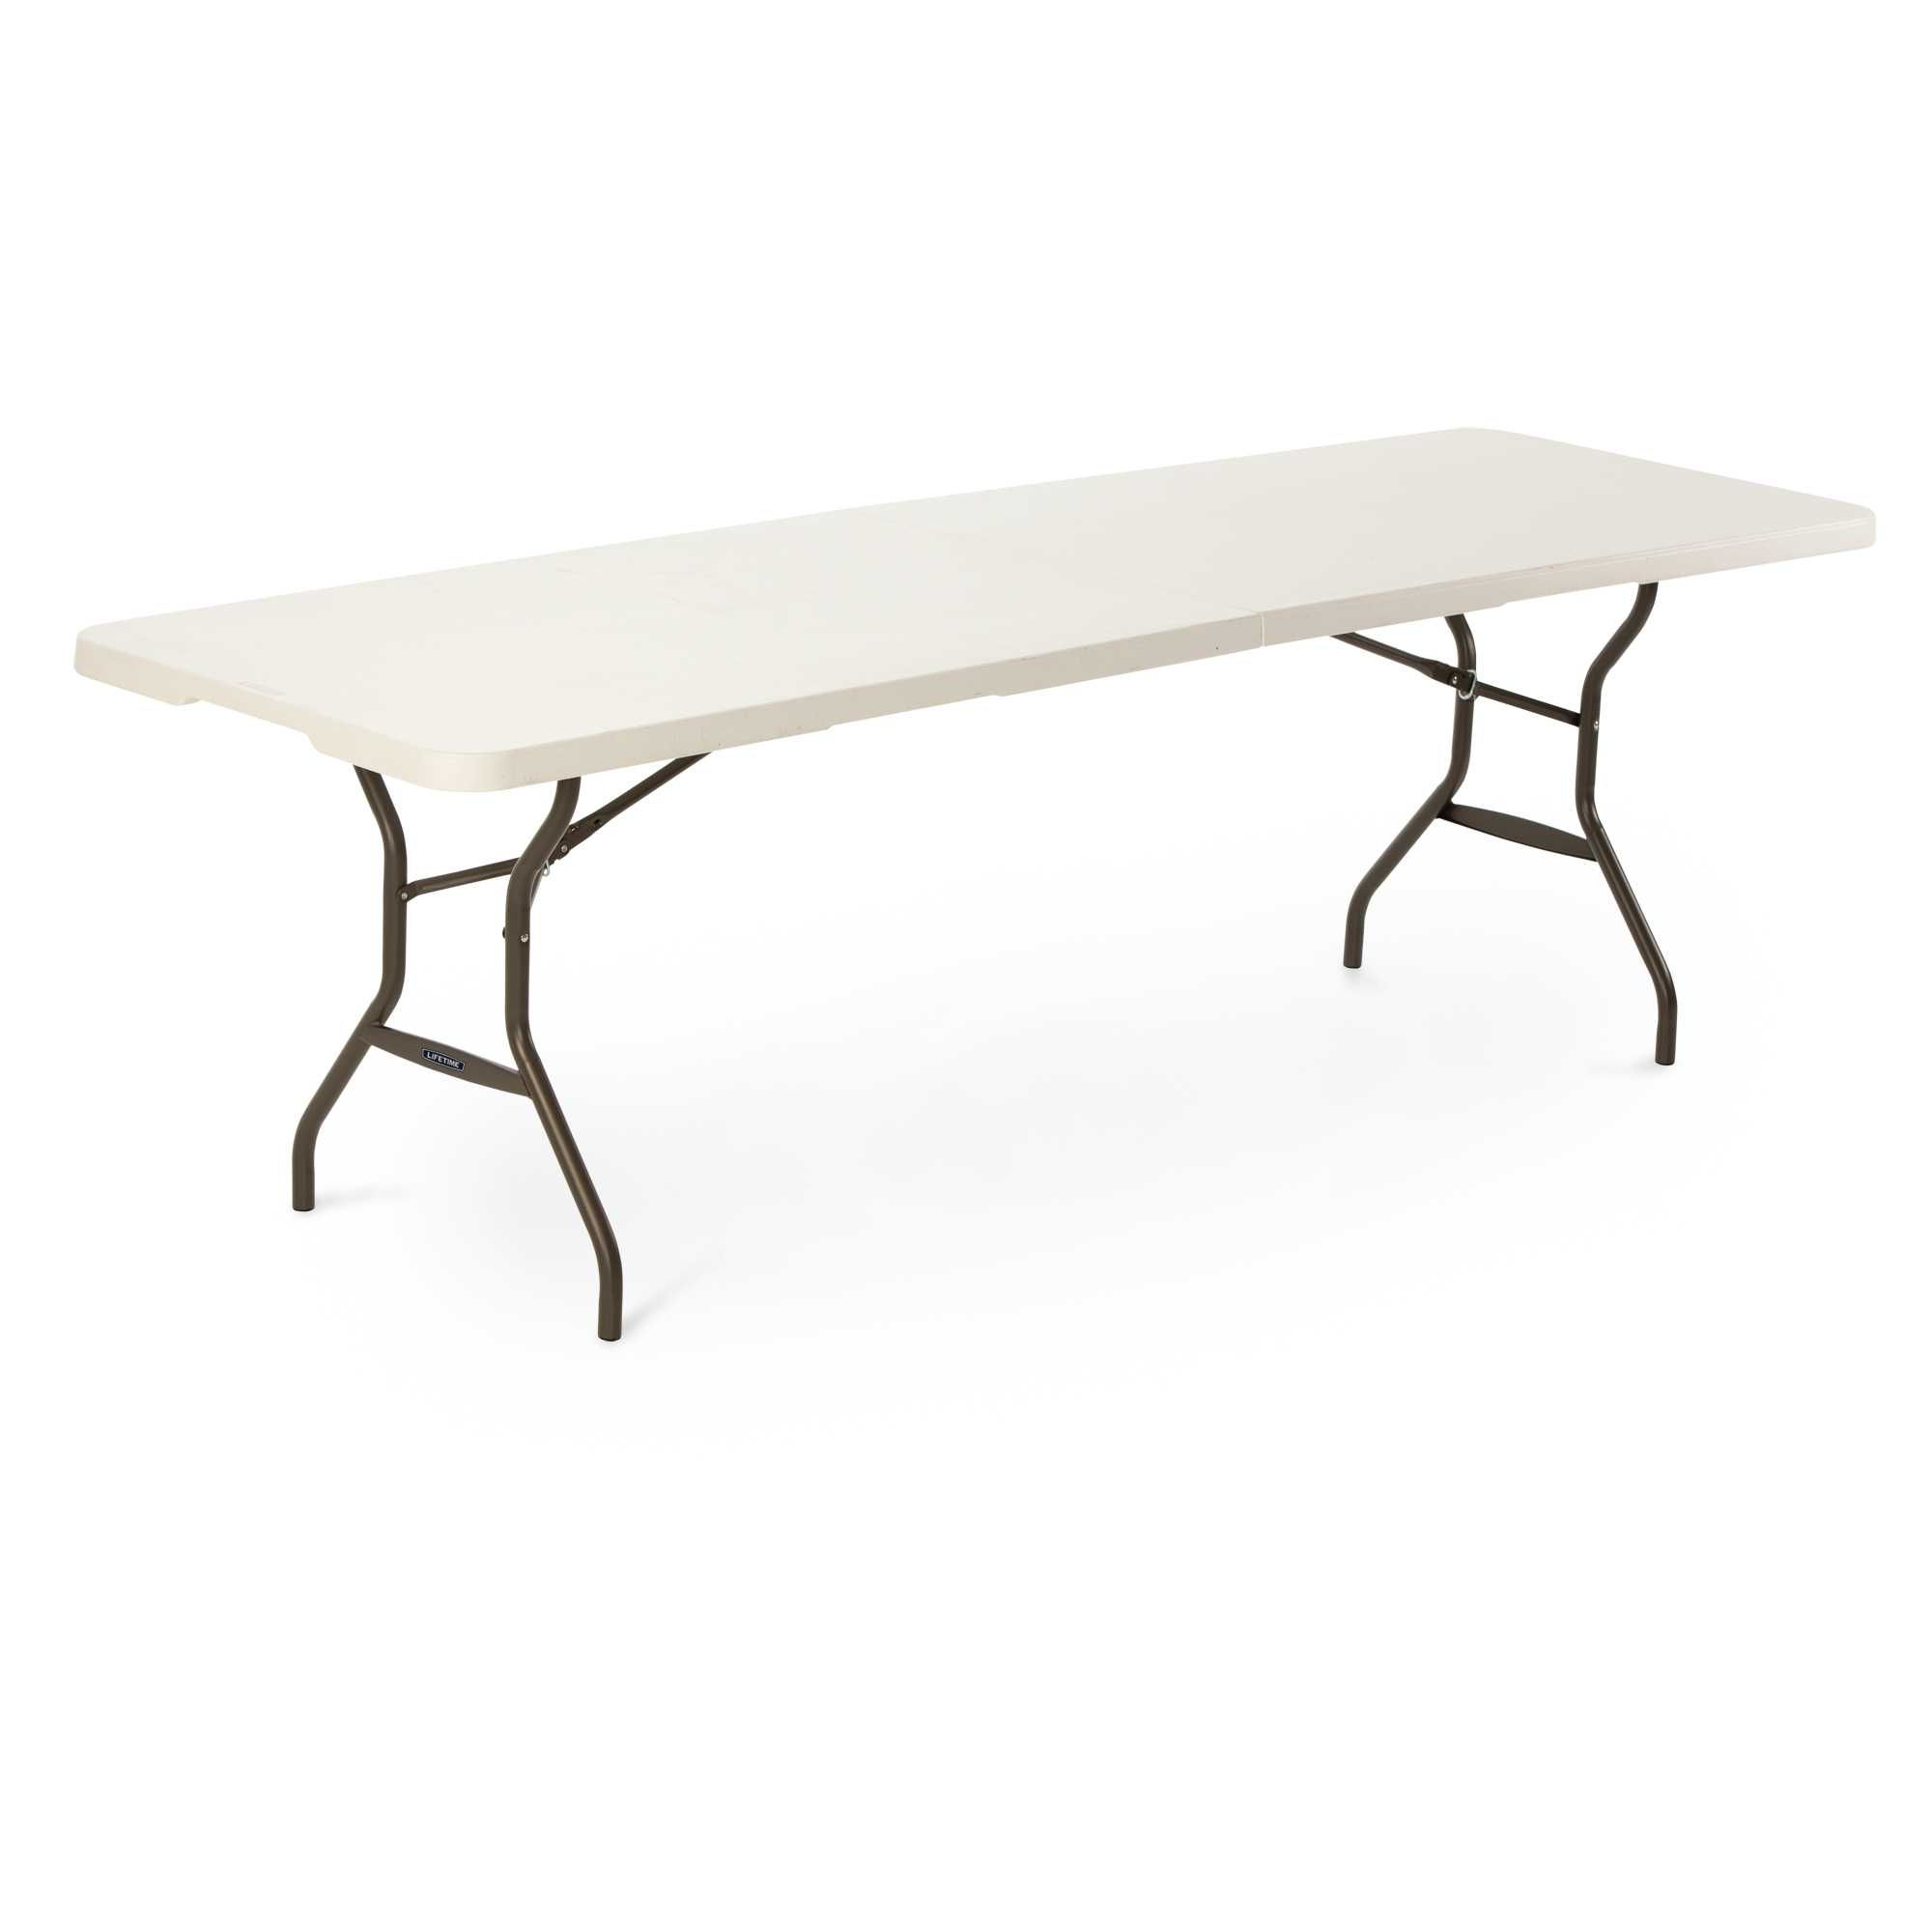 Pin By Competitive Edge Products Inc On Lifetime Eight Foot Fold In Half Tables Lifetime Tables Folding Table Table Top Frame